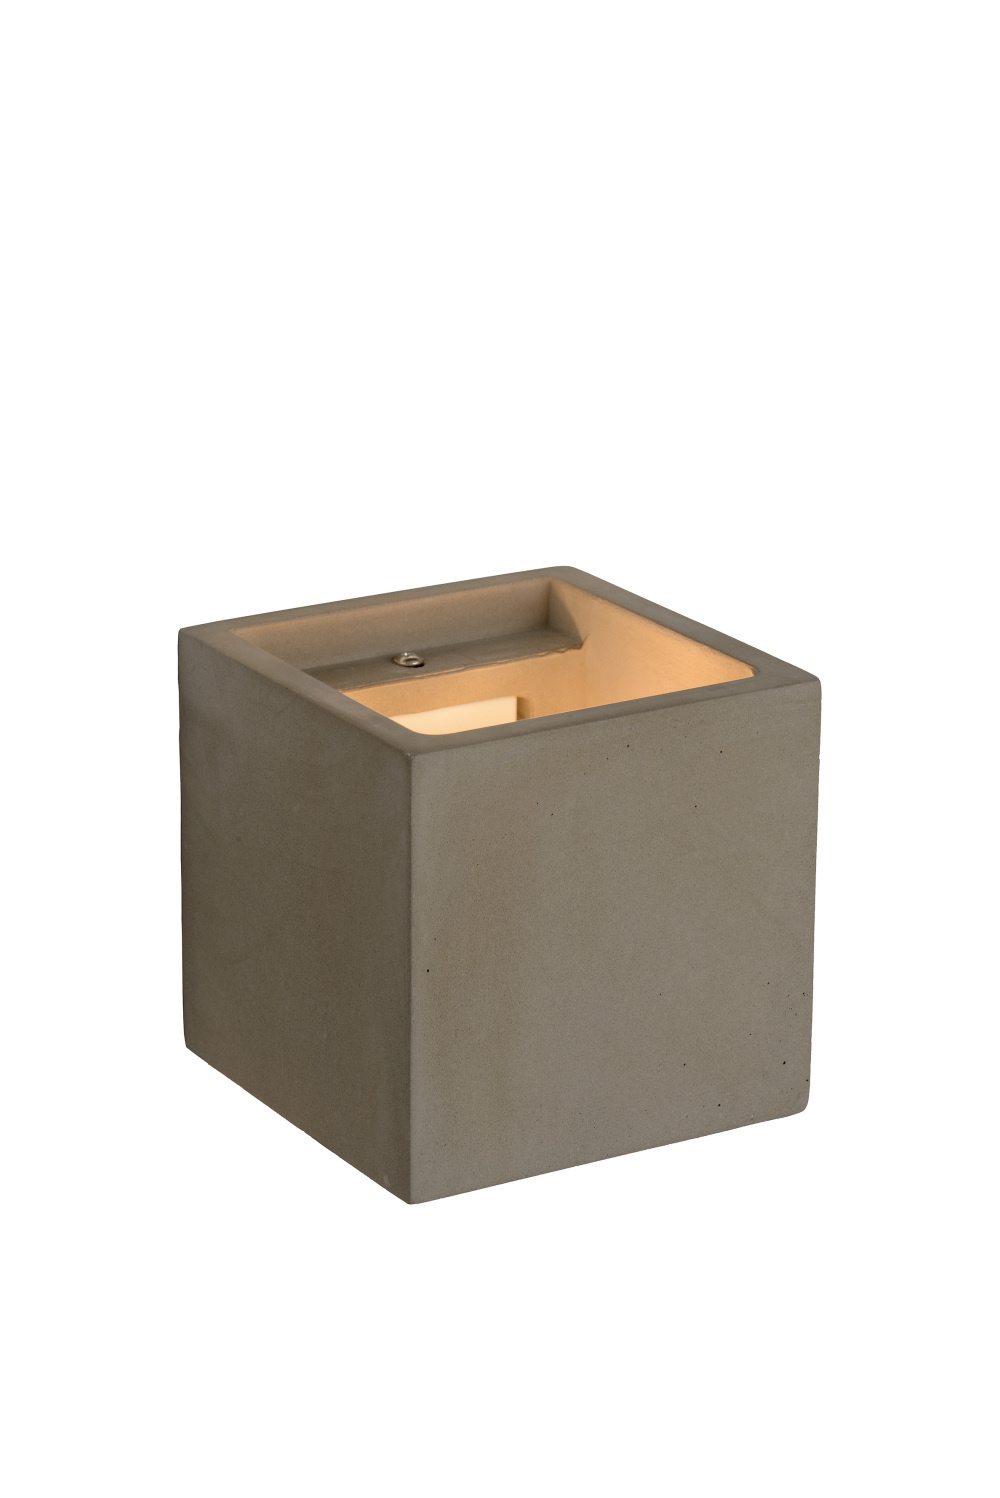 Lucide GIPSY Wandlicht G9 11.5x11.5x11.5cm Taupe